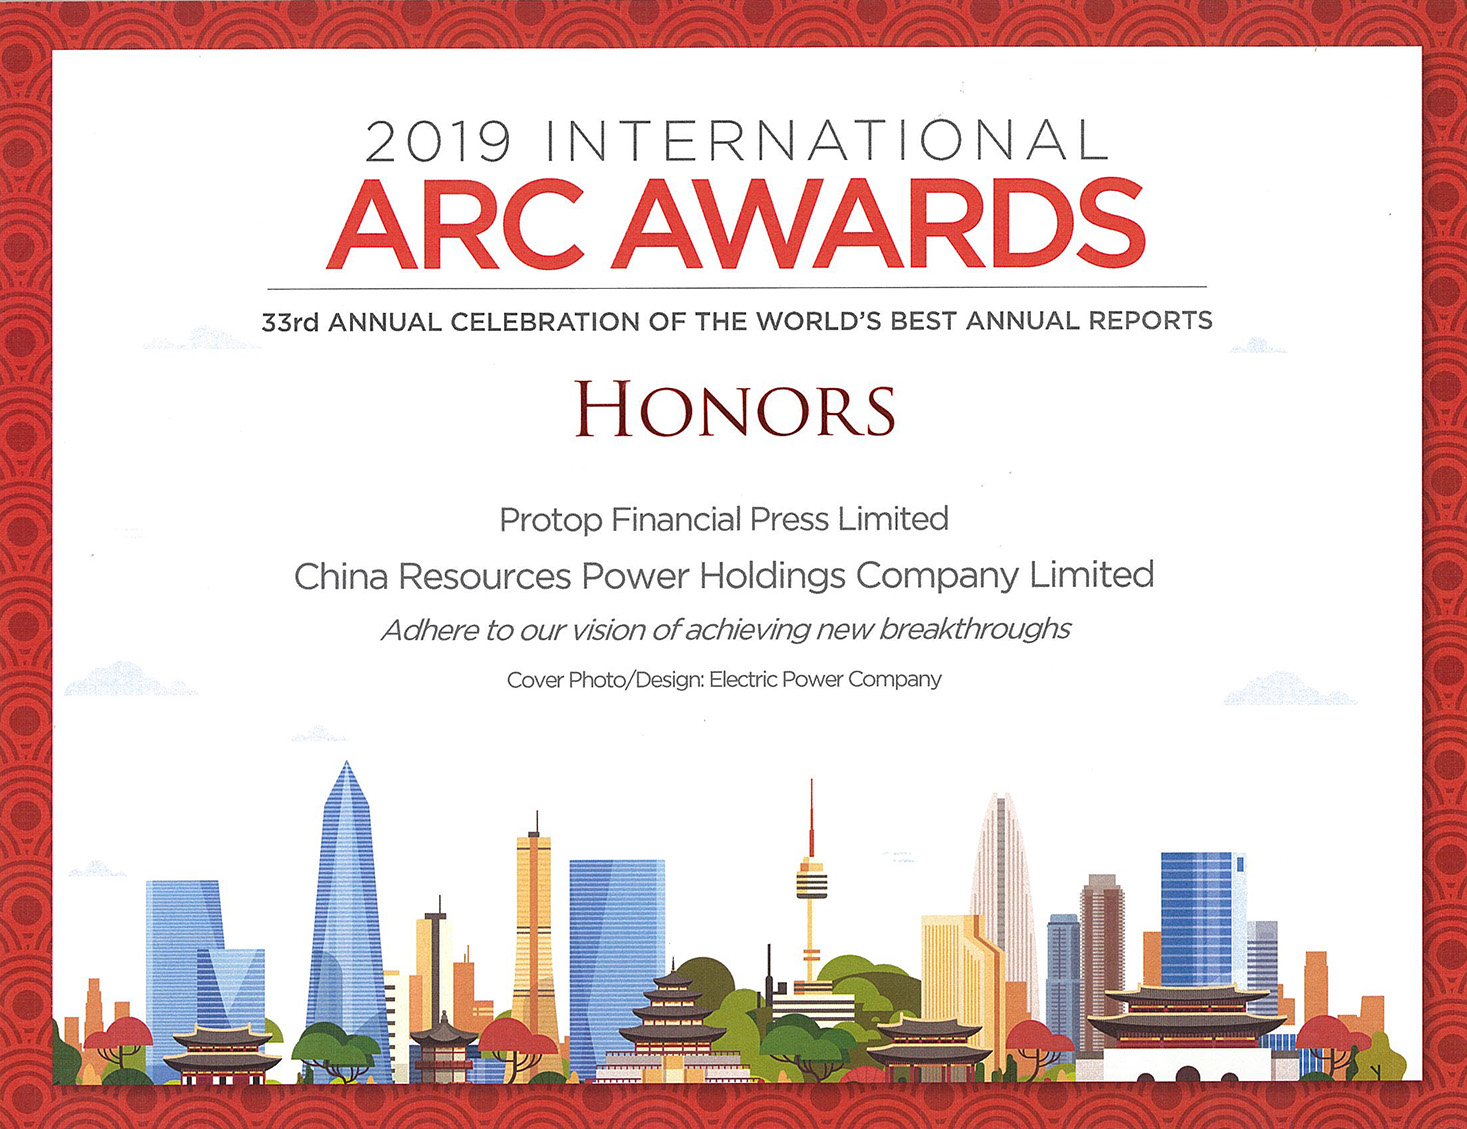 華潤電力控股有限公司 – 2019 ARC AWARDS HONORS Cover Photo/Design: Electric Power Company